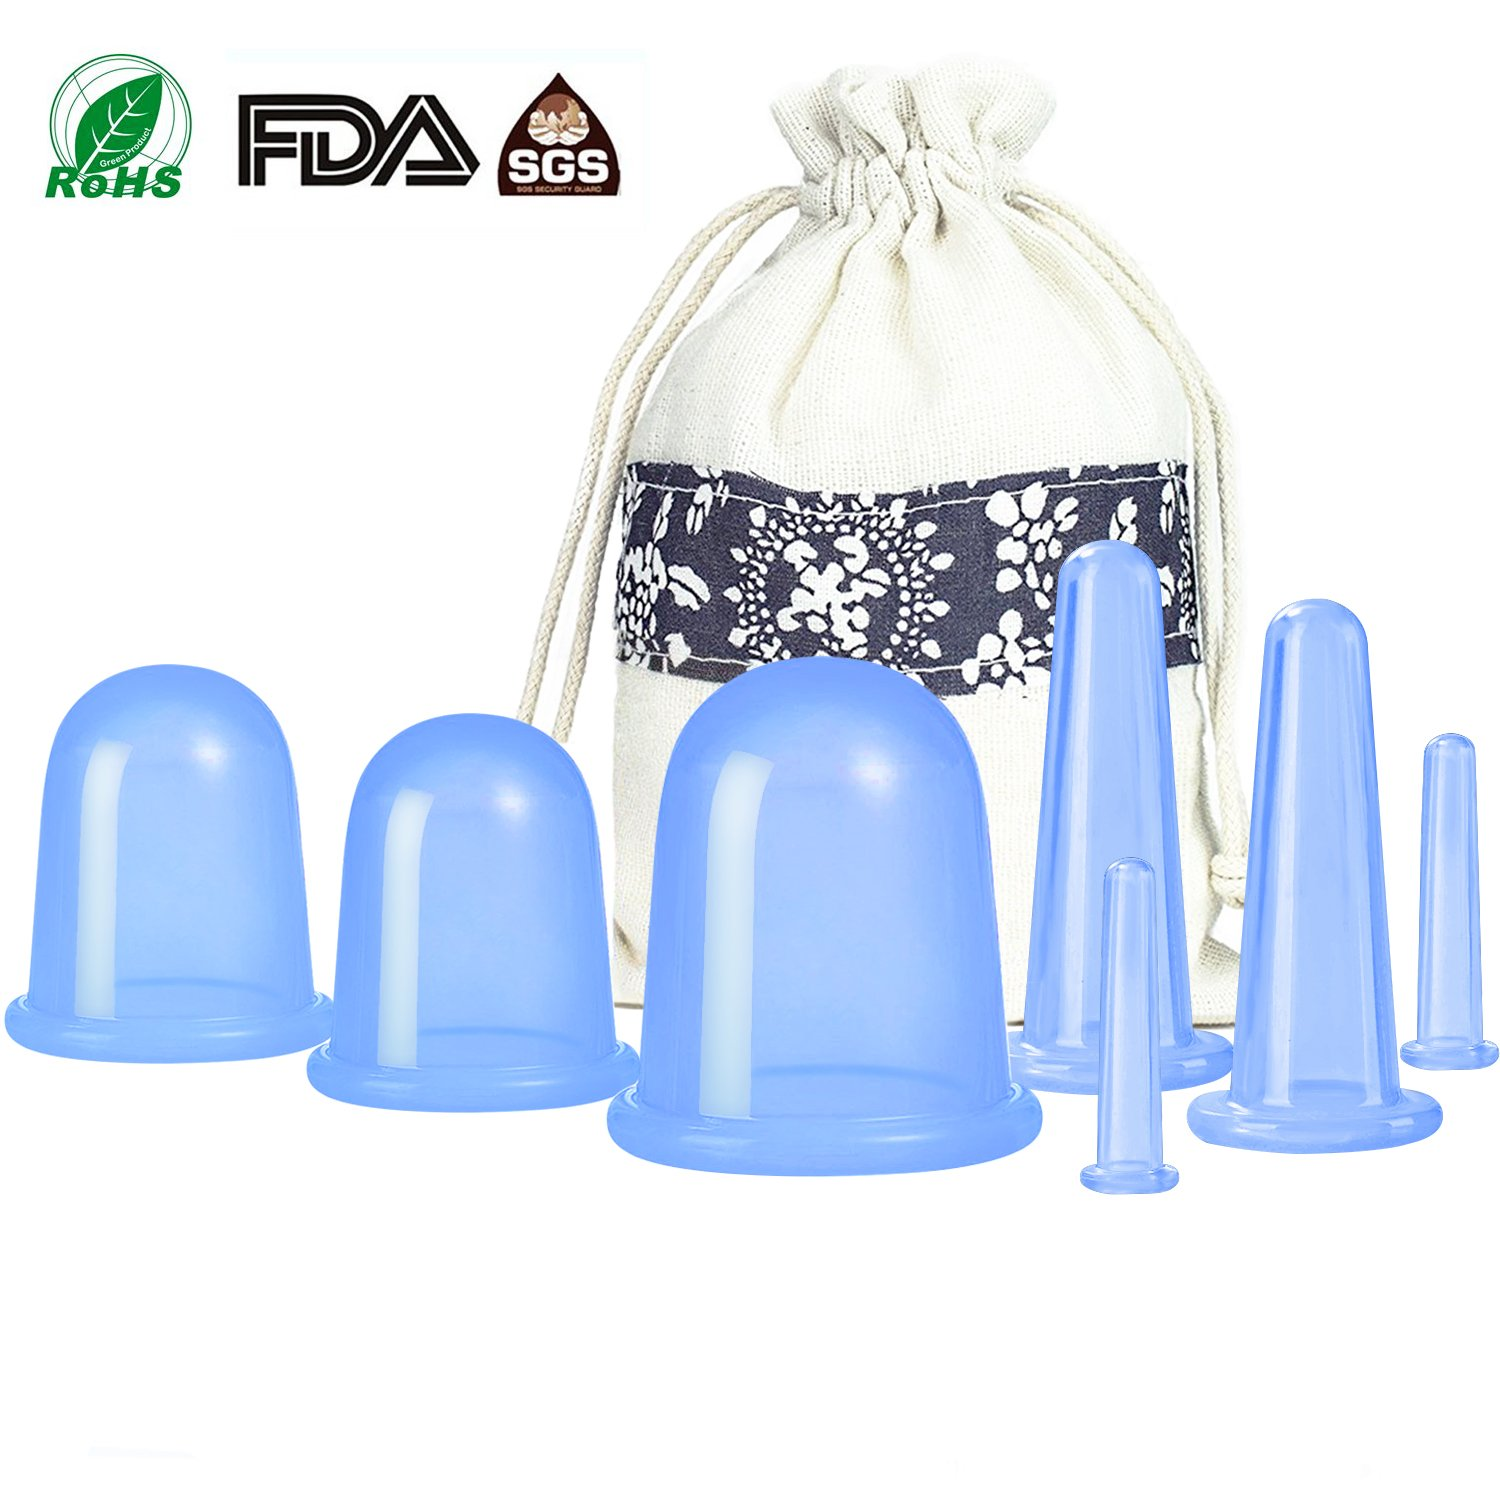 500-miles Anti Cellulite Cupping Therapy Set of 7 Silicone Vacuum Suticon Cups - Chinese Cupping Kit for Cellulite Body and Facial Massage, Cupping Cup for Adults Home Use